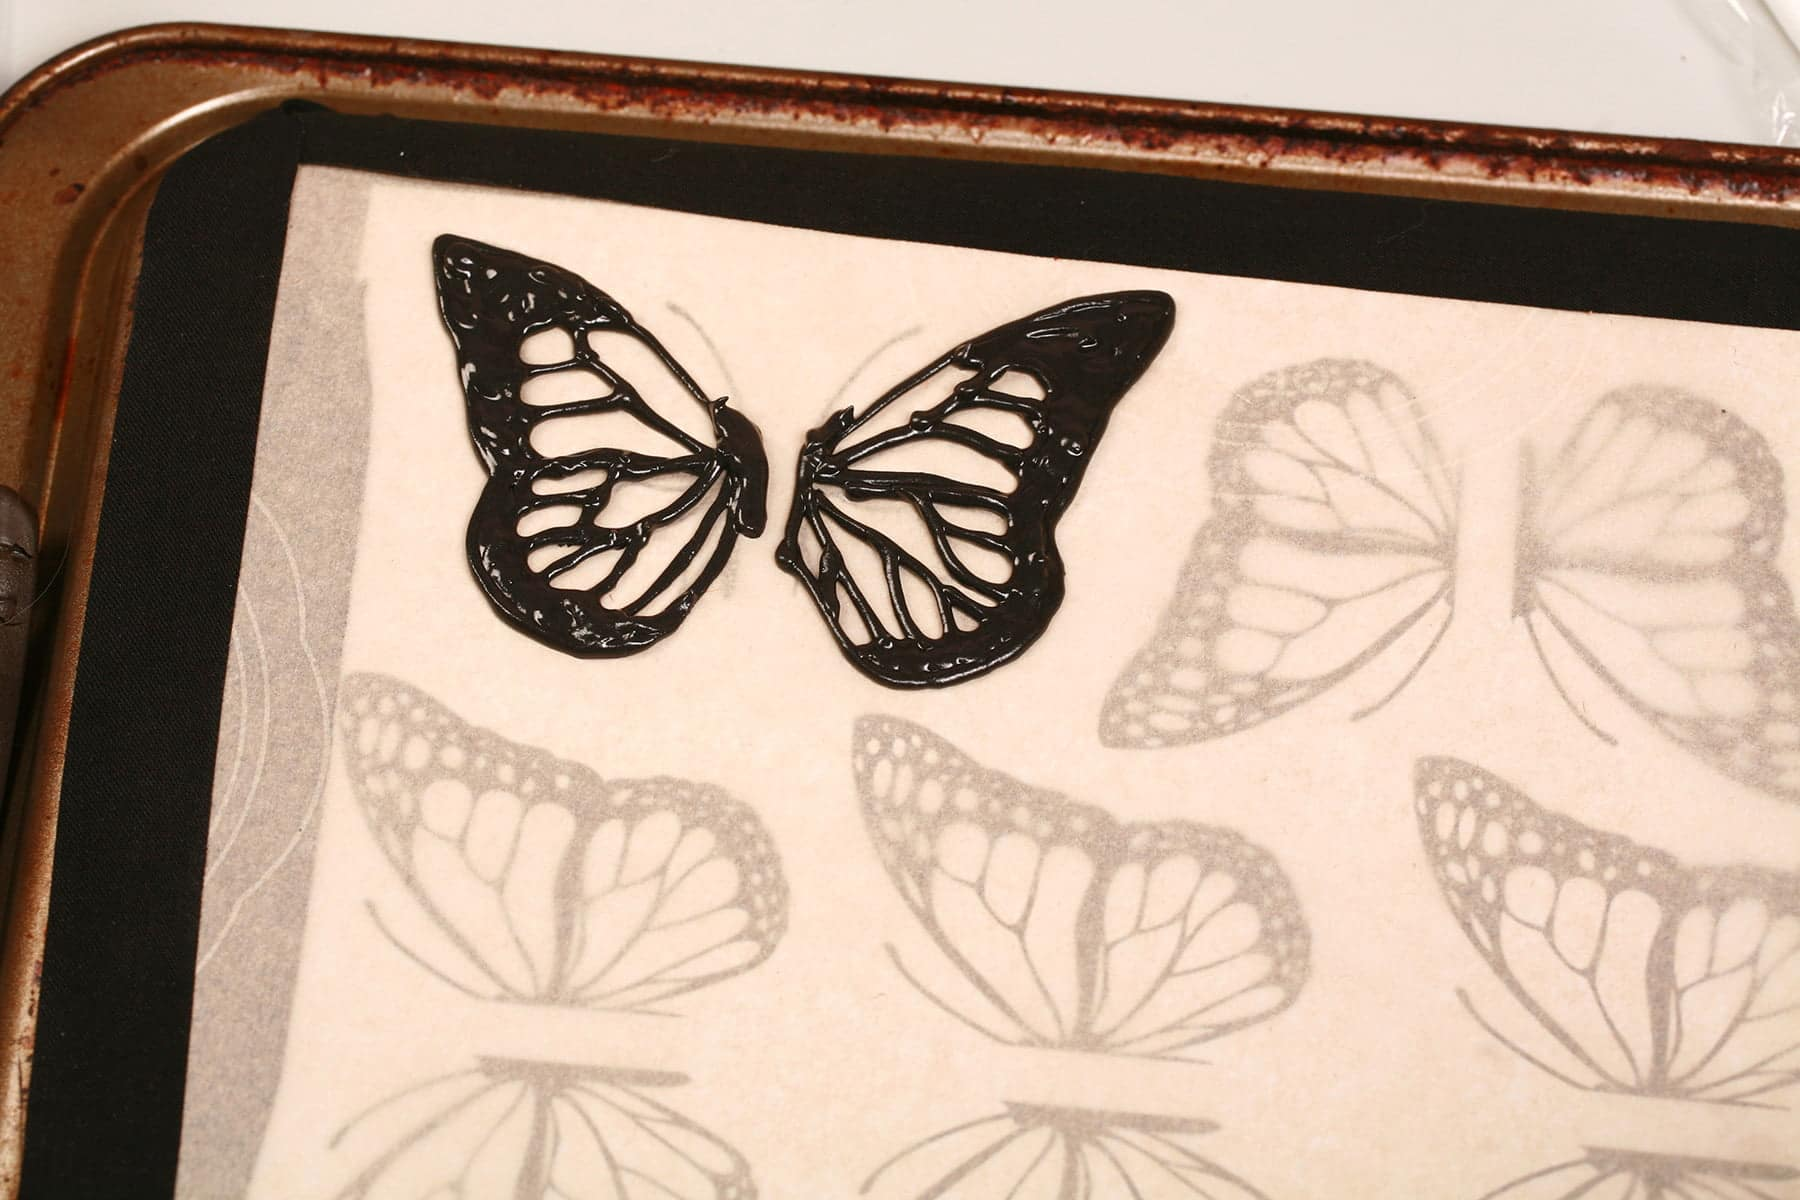 A set of butterfly wing outlines, piped on a parchment lined baking sheet.